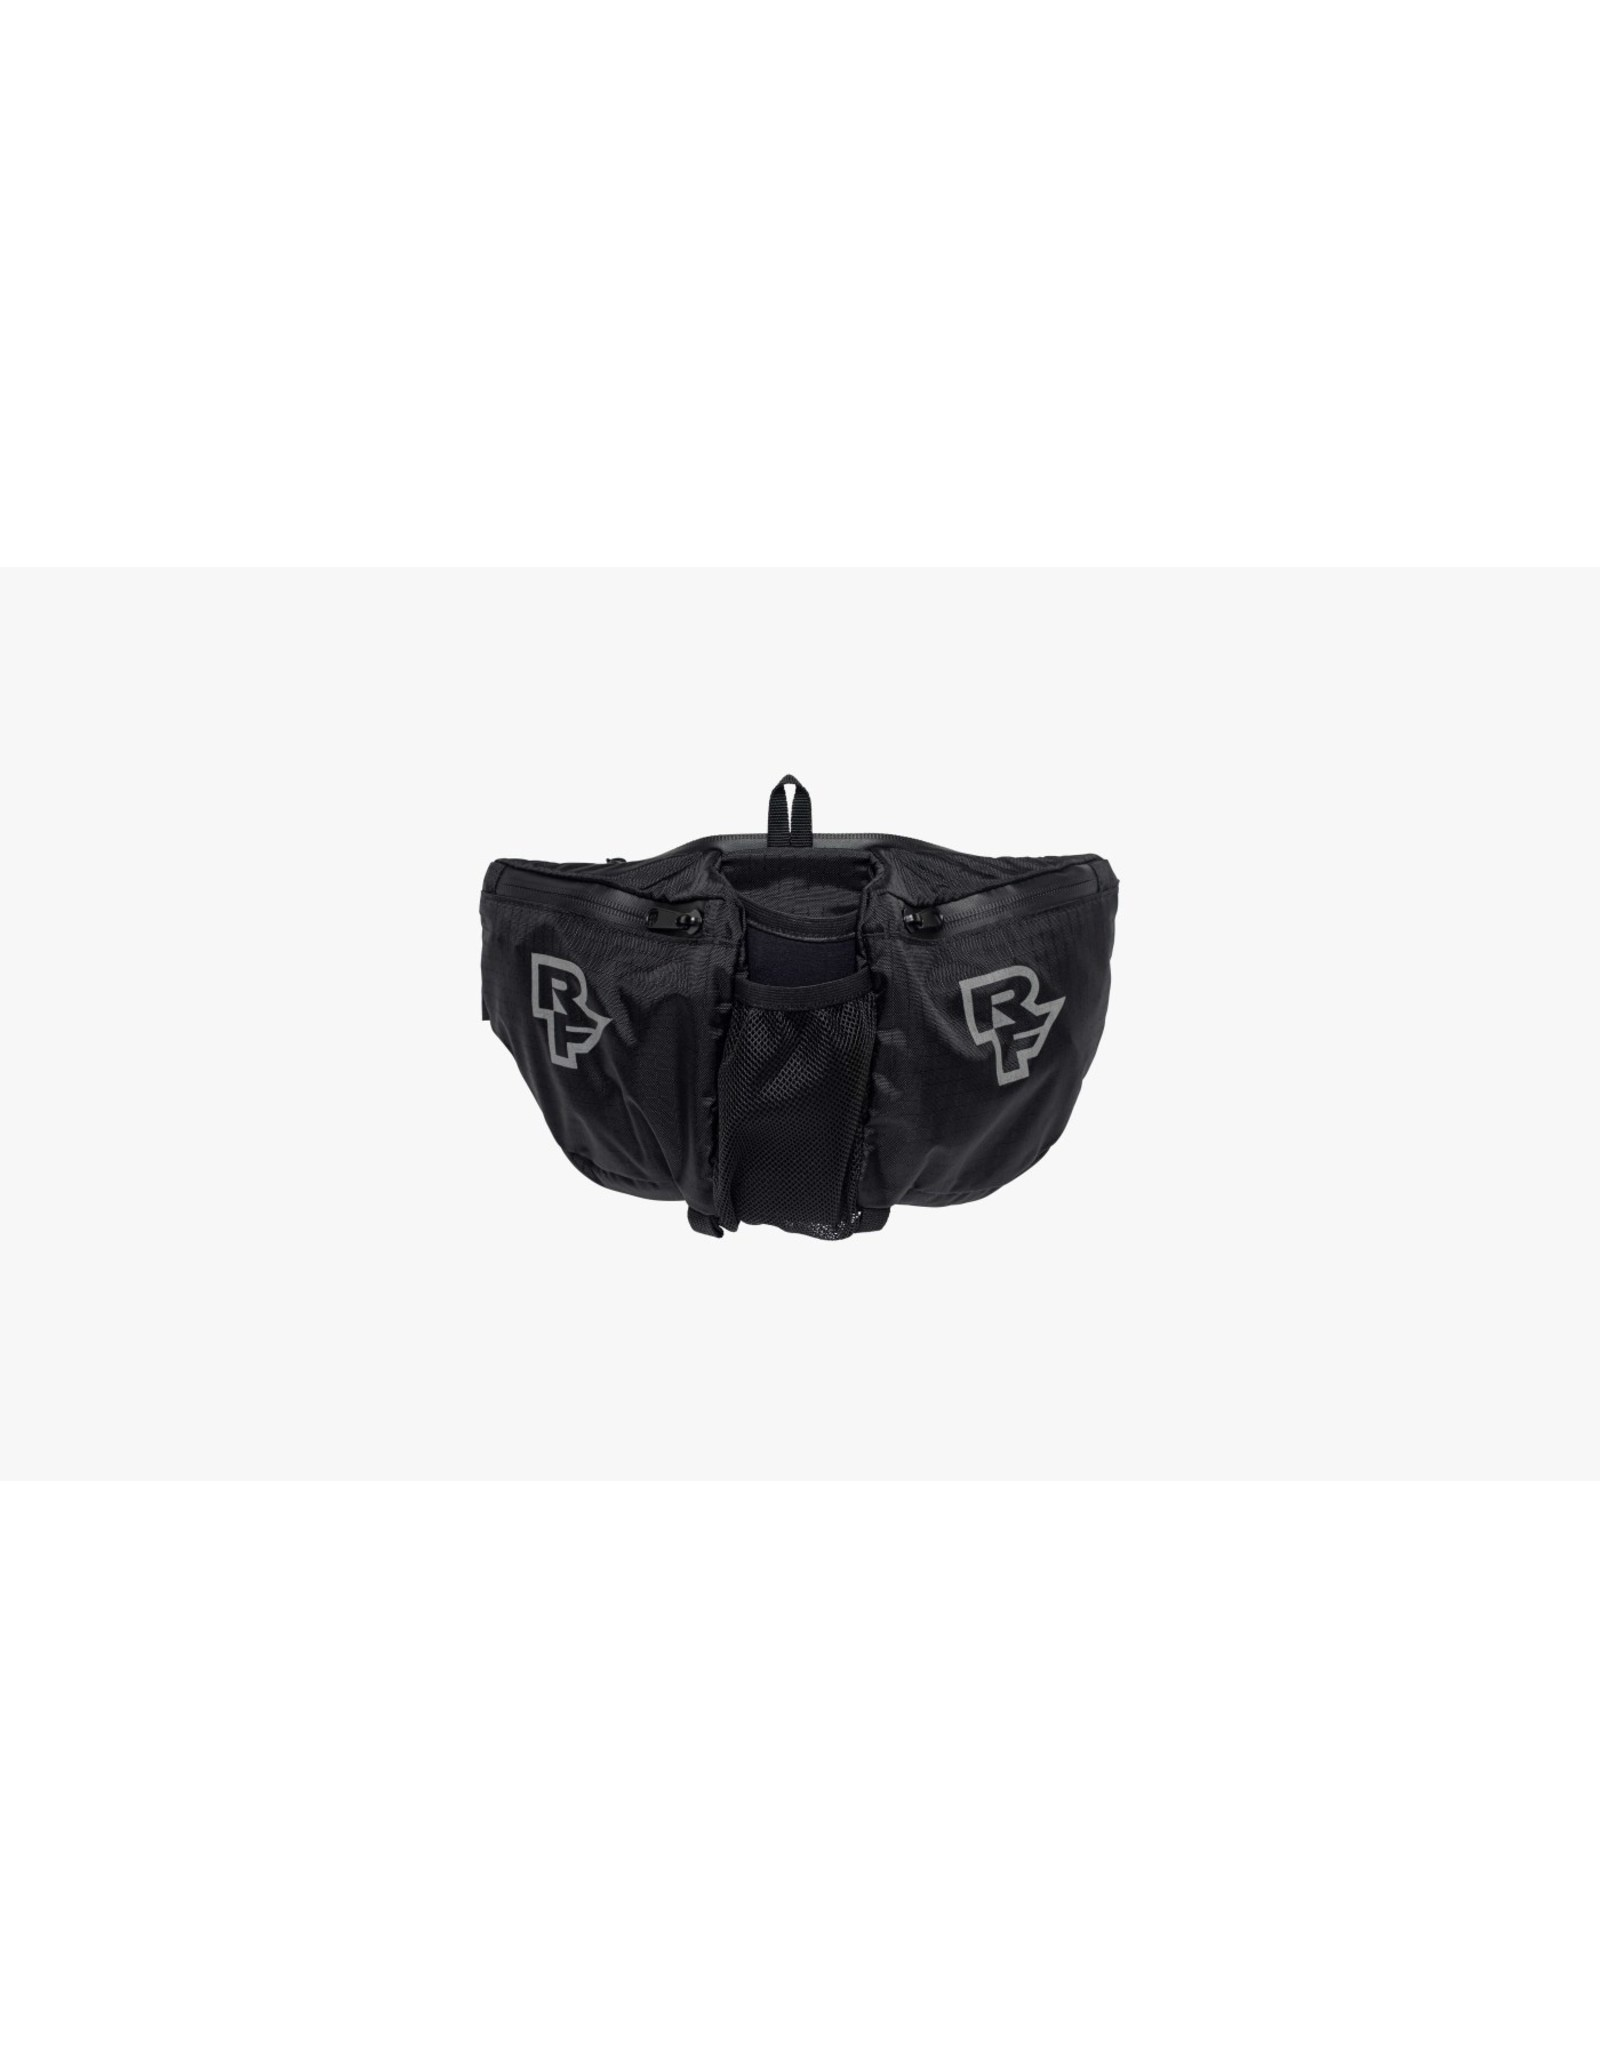 Race Face Stash Quick Rip Bag Stealth OS